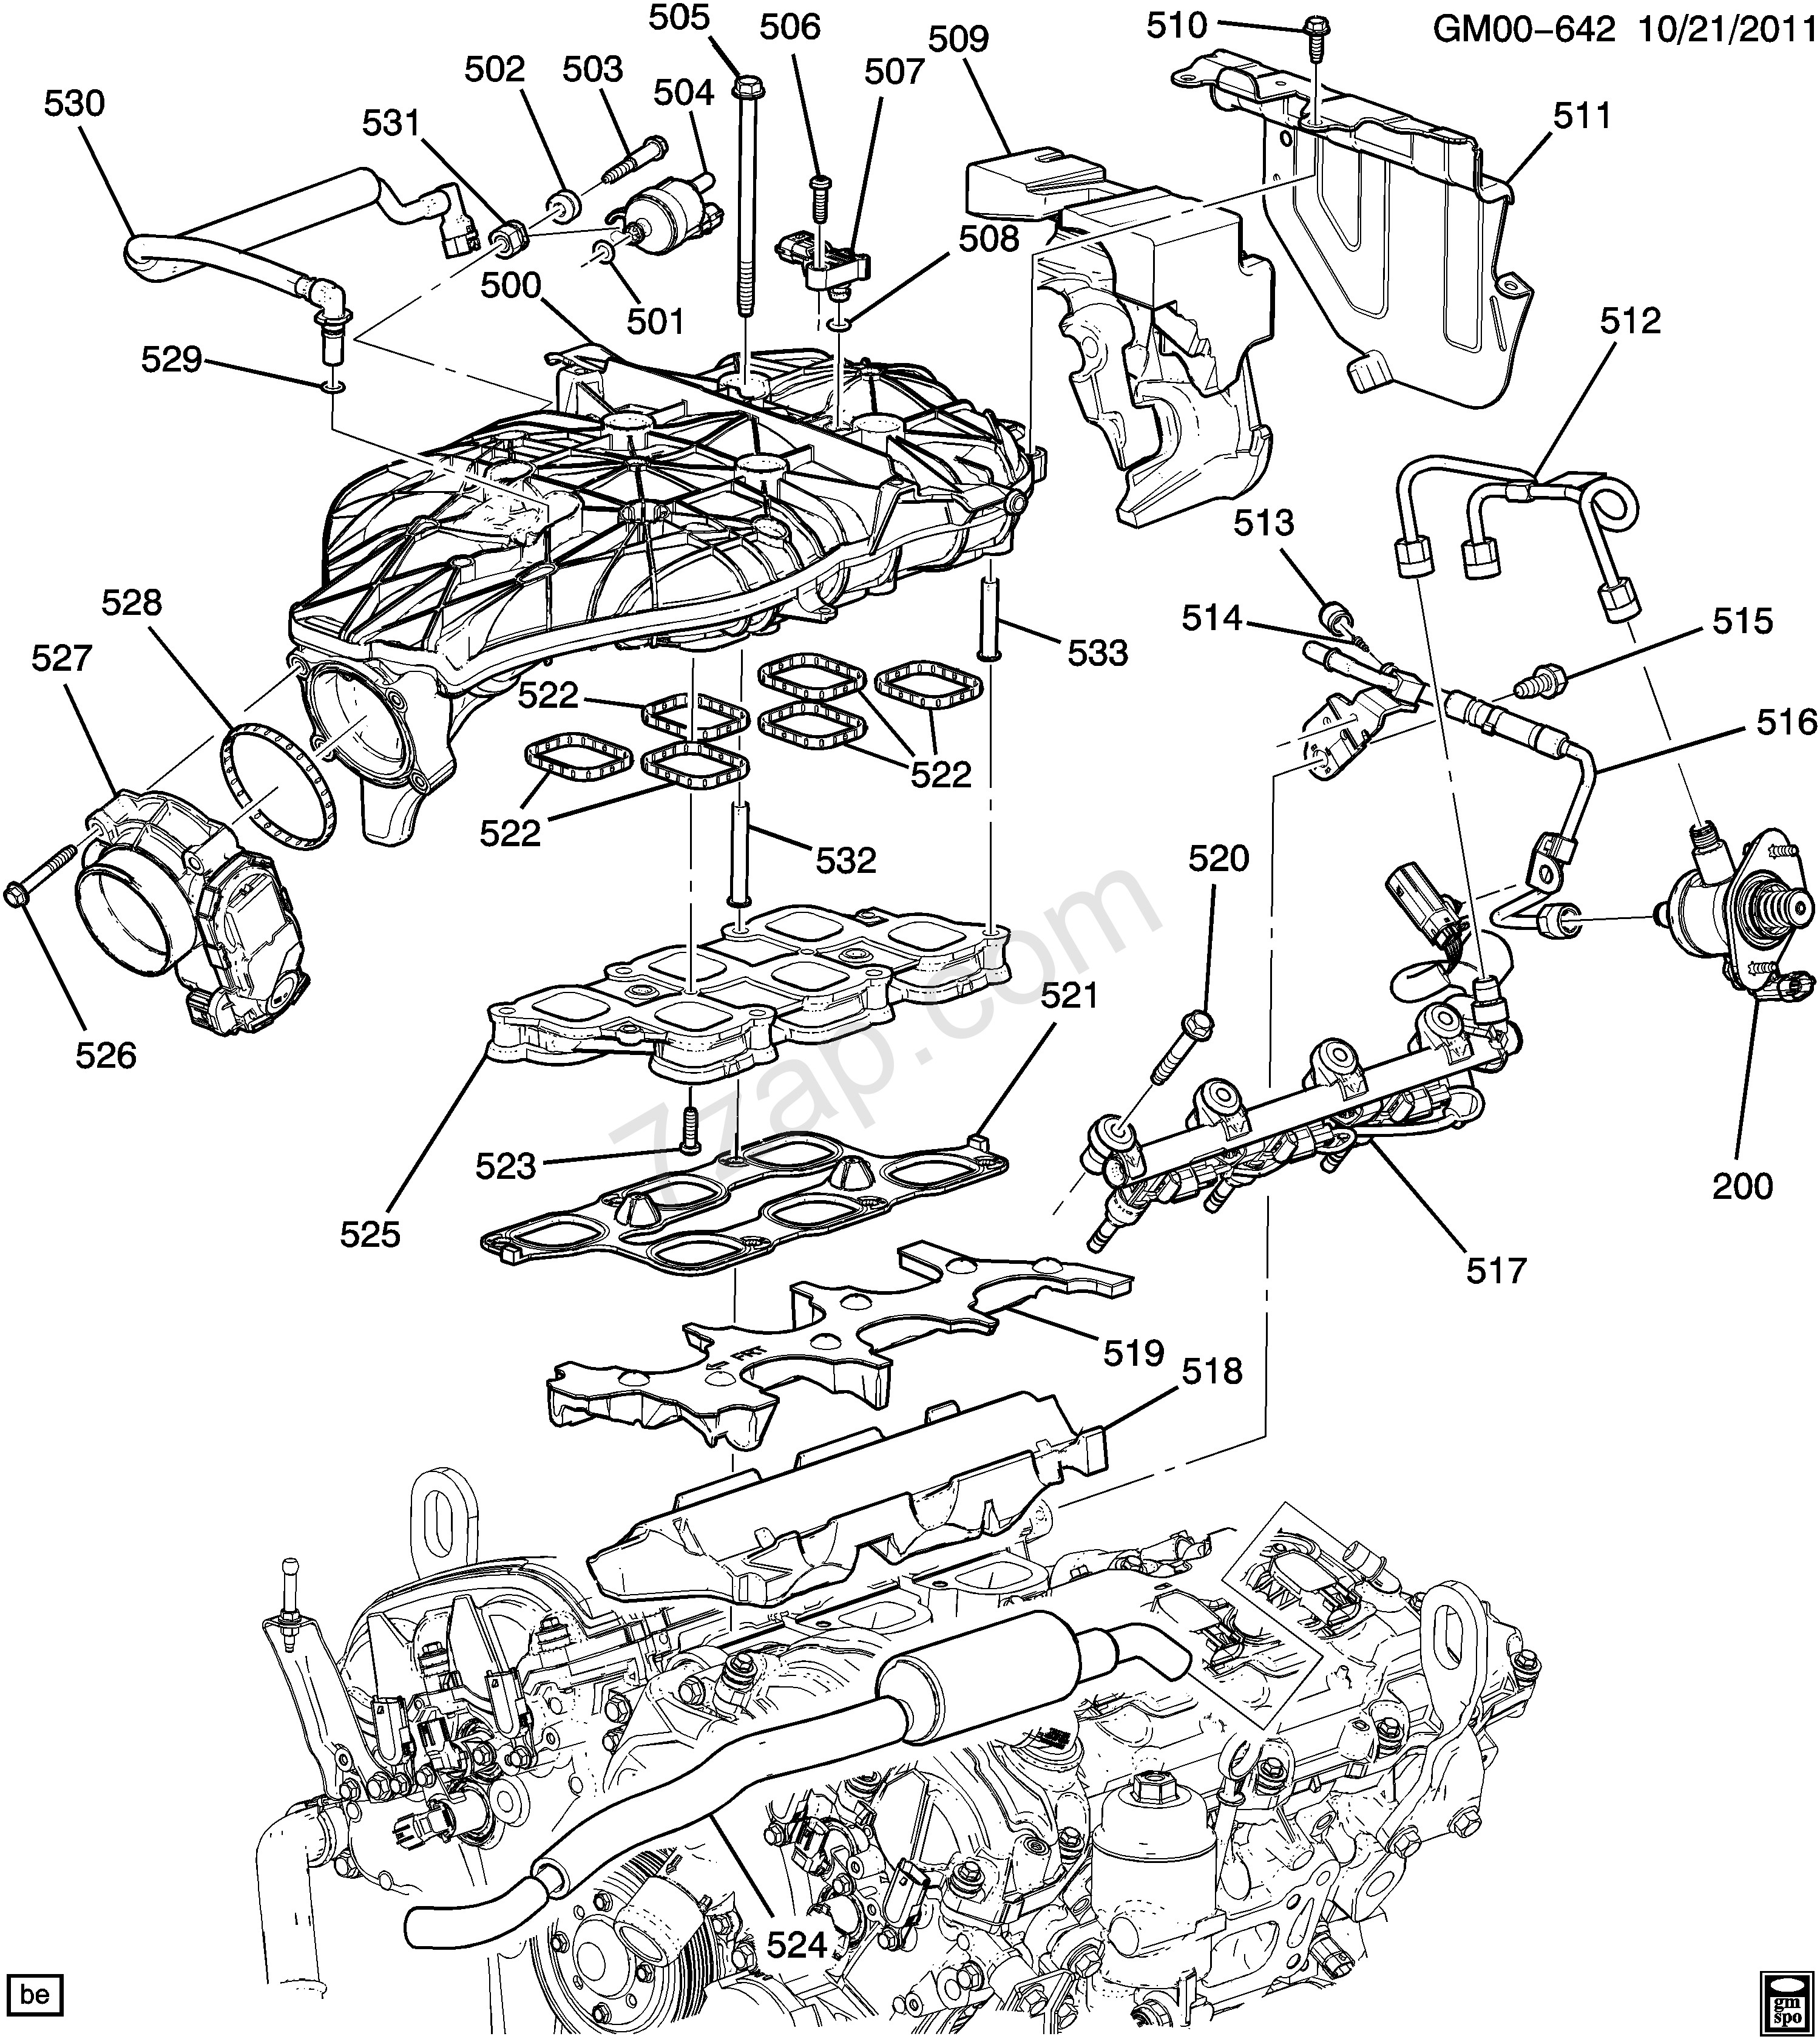 Gm 3 6 V6 Engine Diagram Great Installation Of Wiring 110 4 Stroke Wanted Page Atvconnection 5 Third Level Rh 9 16 14 Jacobwinterstein Com